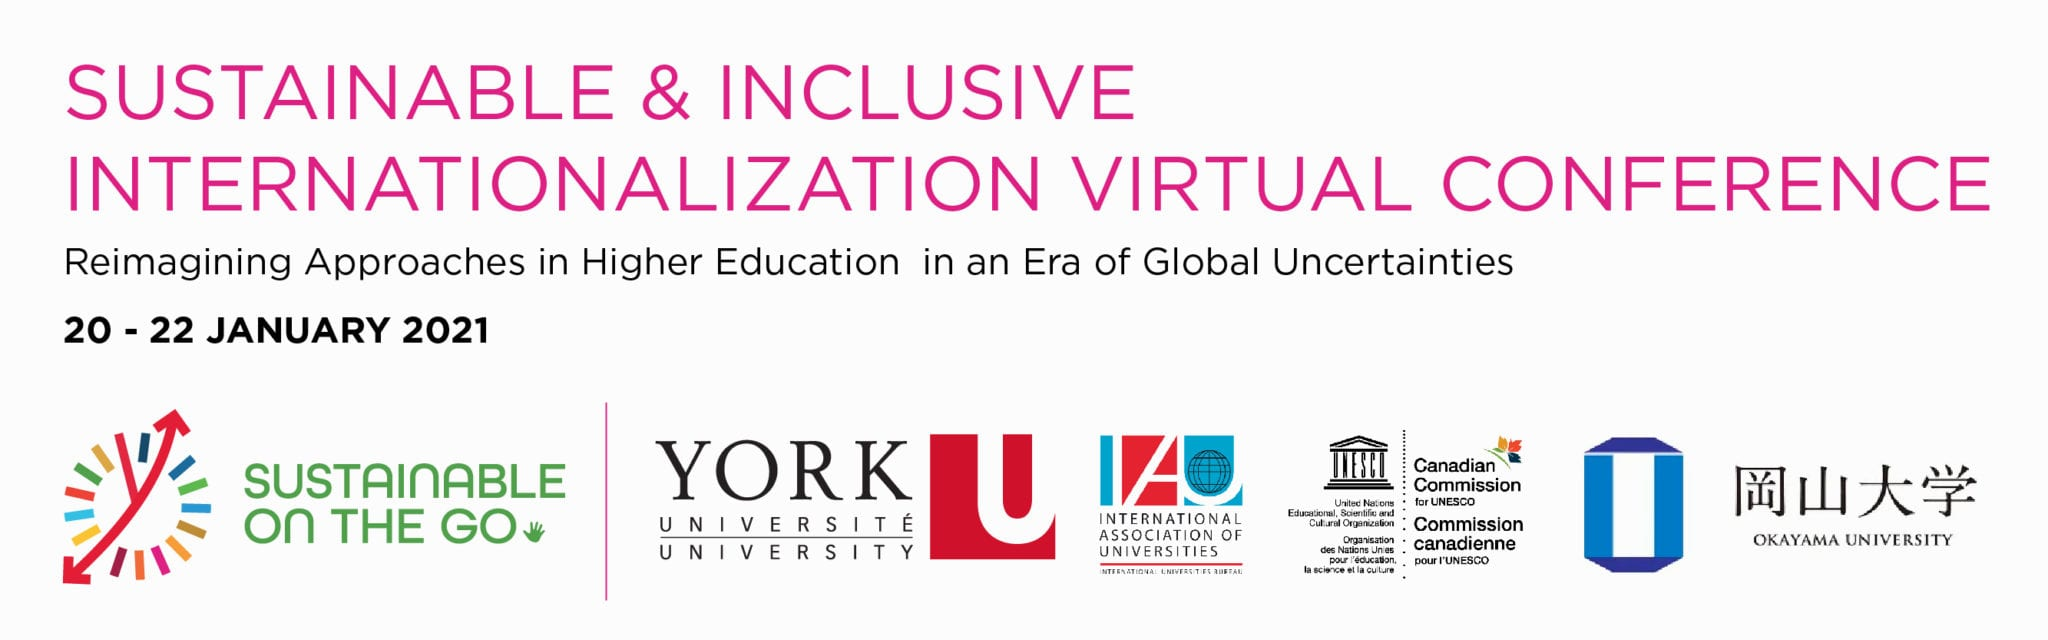 International Virtual Conference Sustainable and Inclusive Internationalization: Reimagining Approaches in Higher Education in an Era of Global Uncertainties 20 - 22 January 2021 | Conférence Virtuelle sur l'Internationalisation Durable et Inclusive: Repenser les approches de l'enseignement supérieur à l'ère des incertitudes mondiales